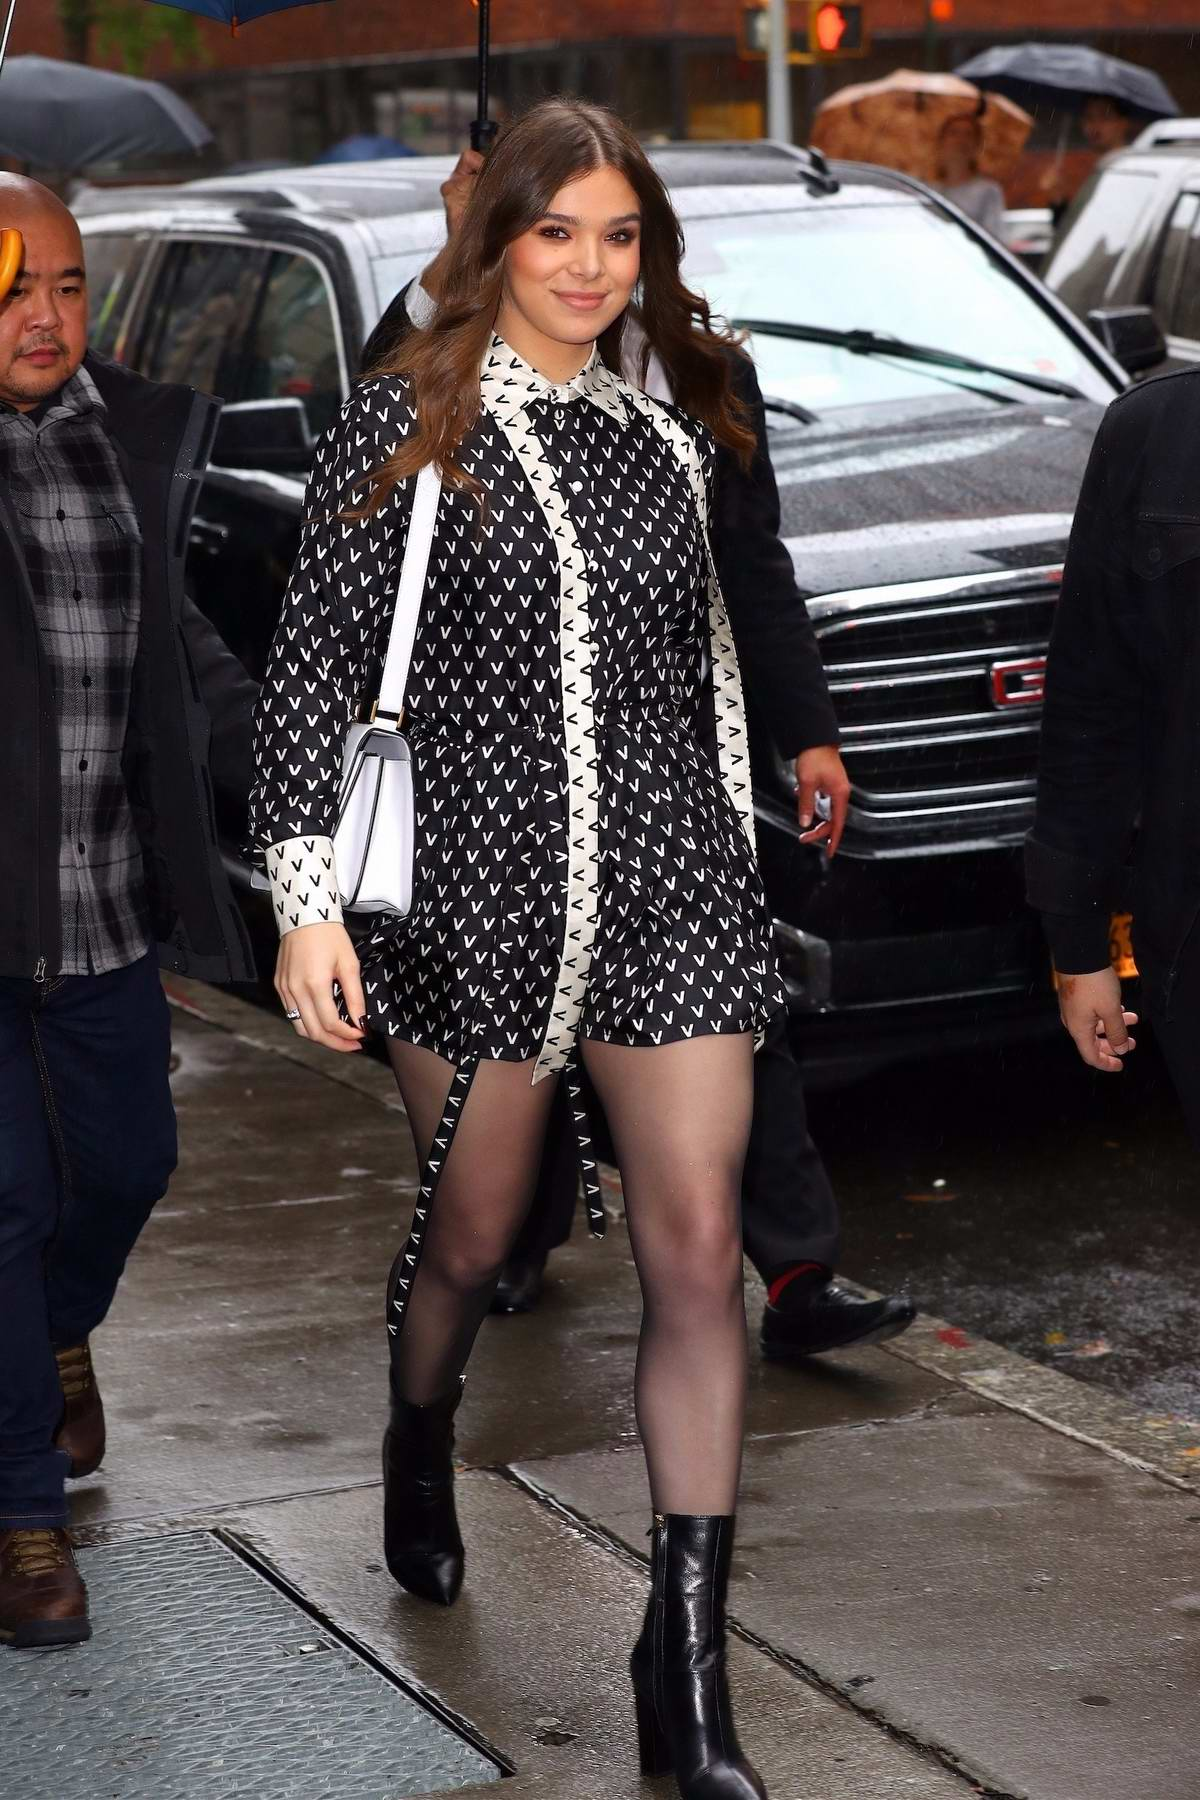 Hailee Steinfeld wears a patterned black and white romper as she visits the Build Series in New York City